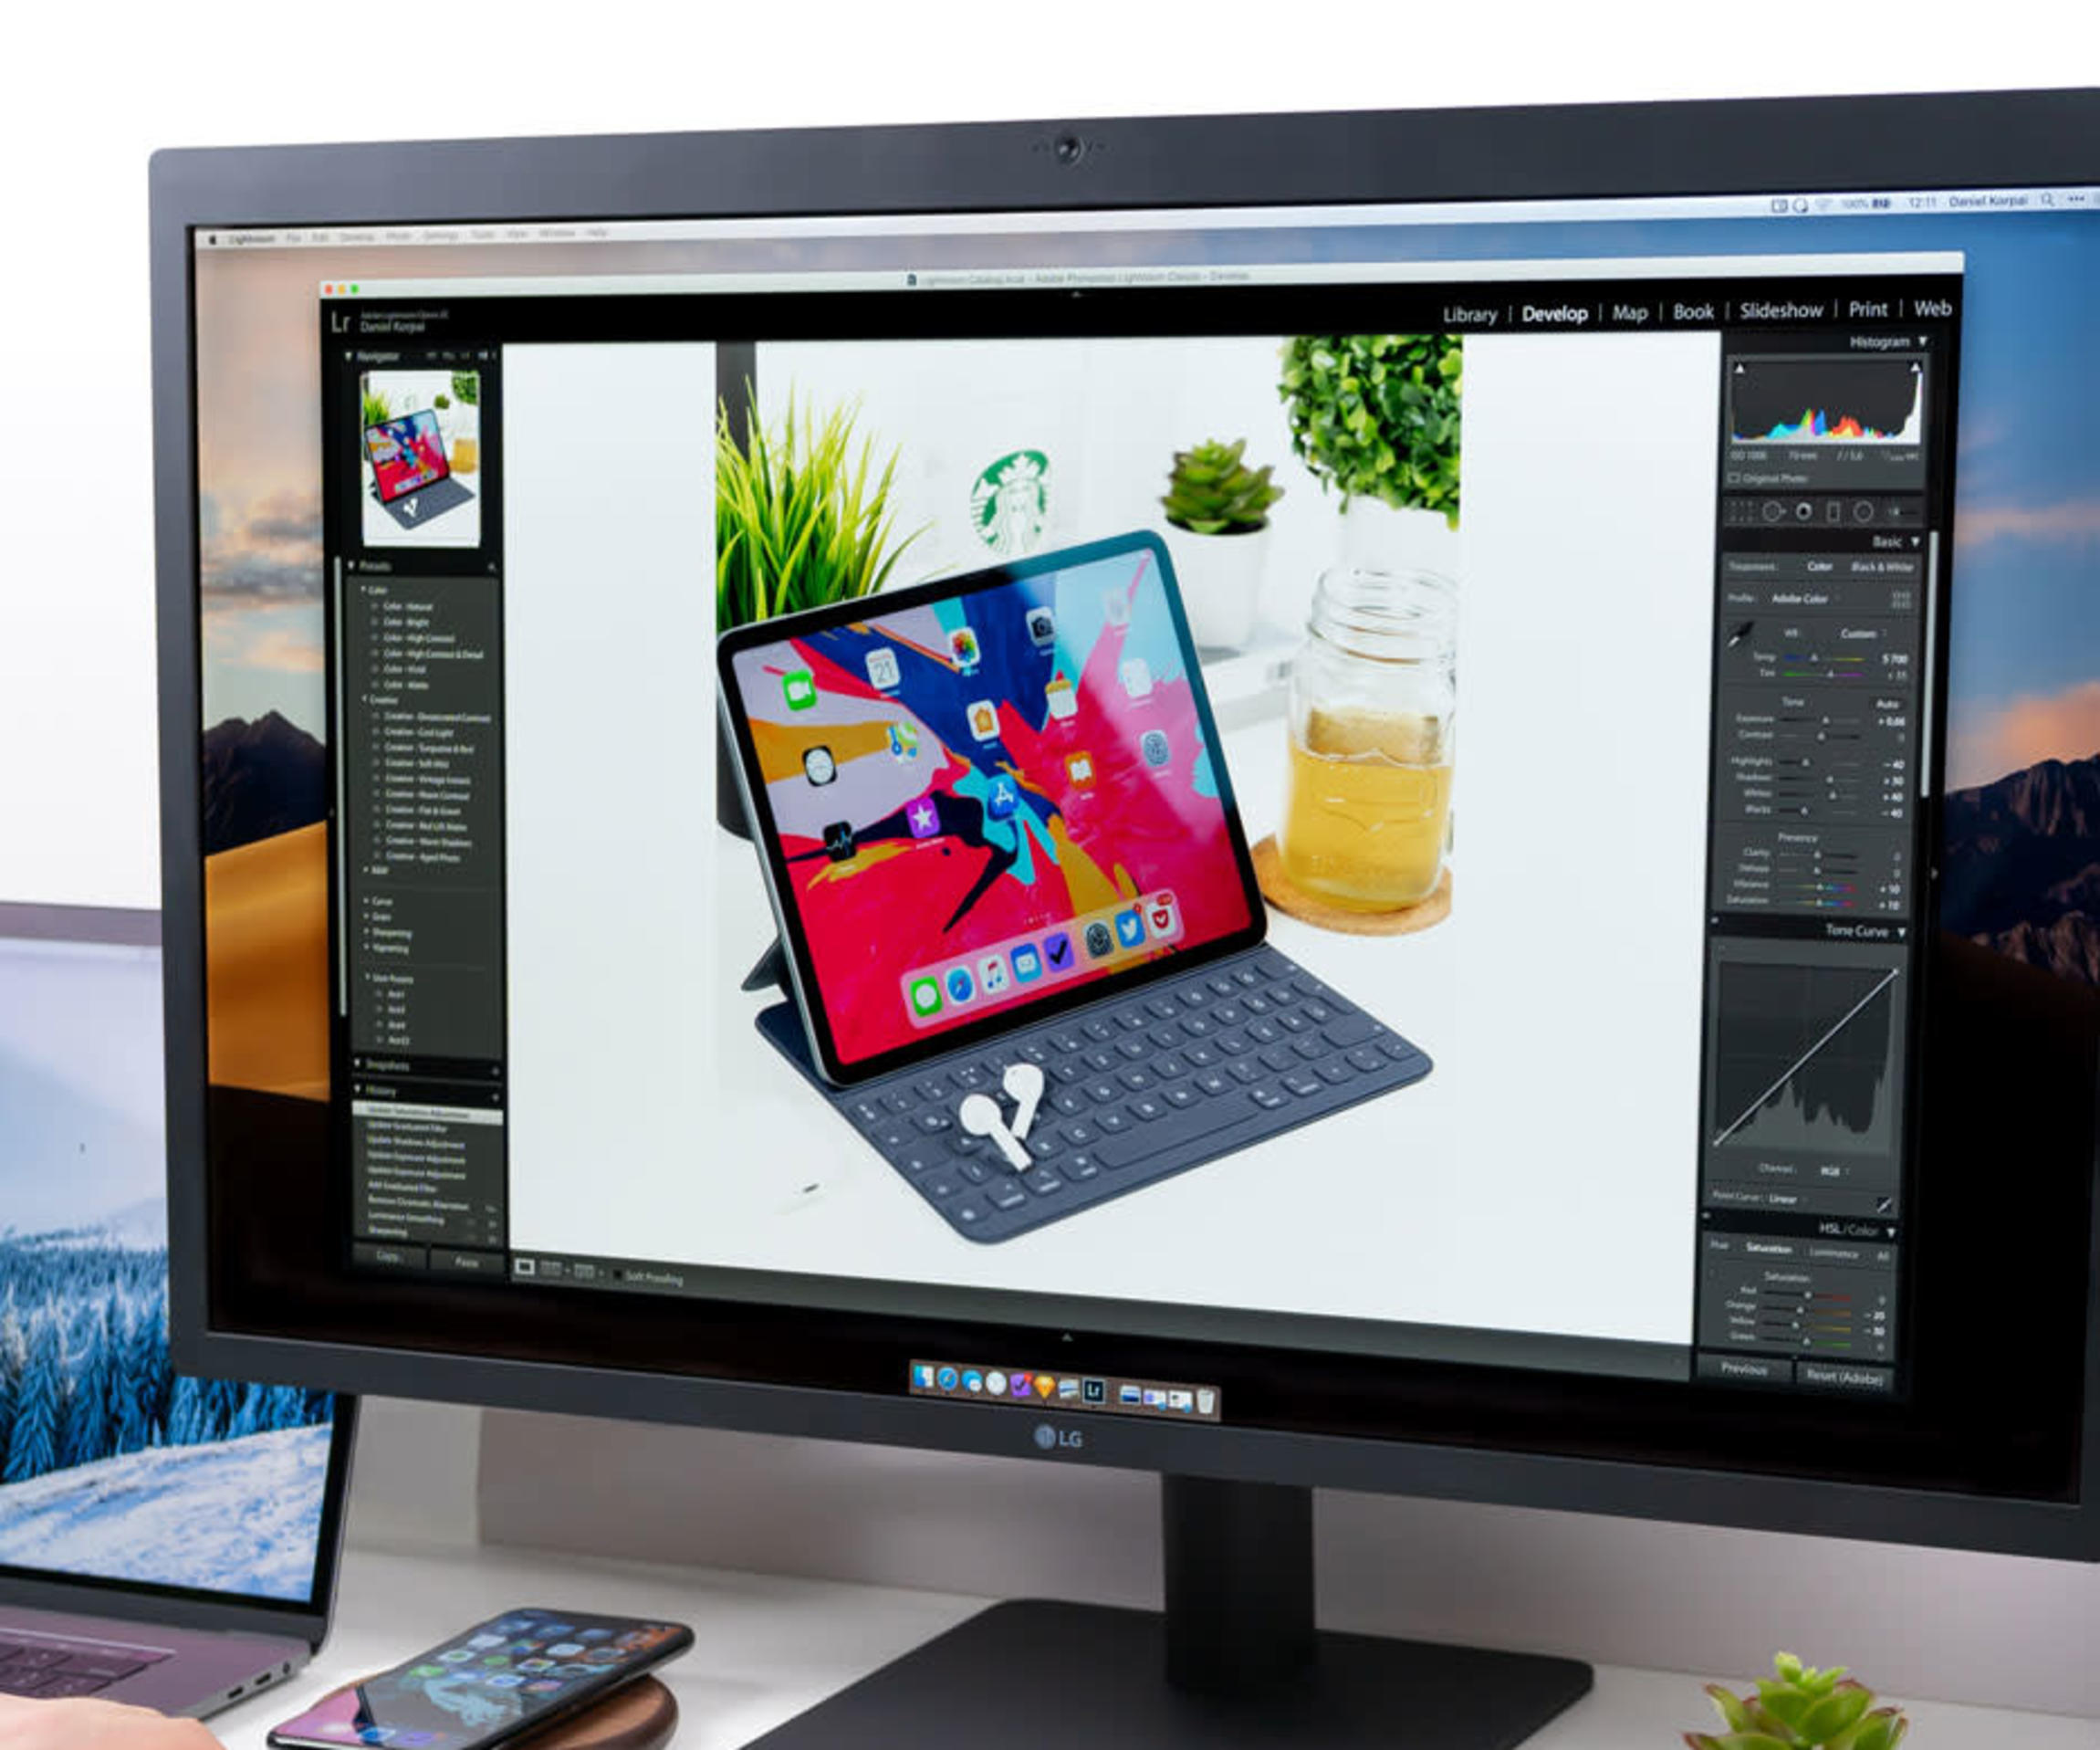 What Are The Best Monitors For Photo Editing?